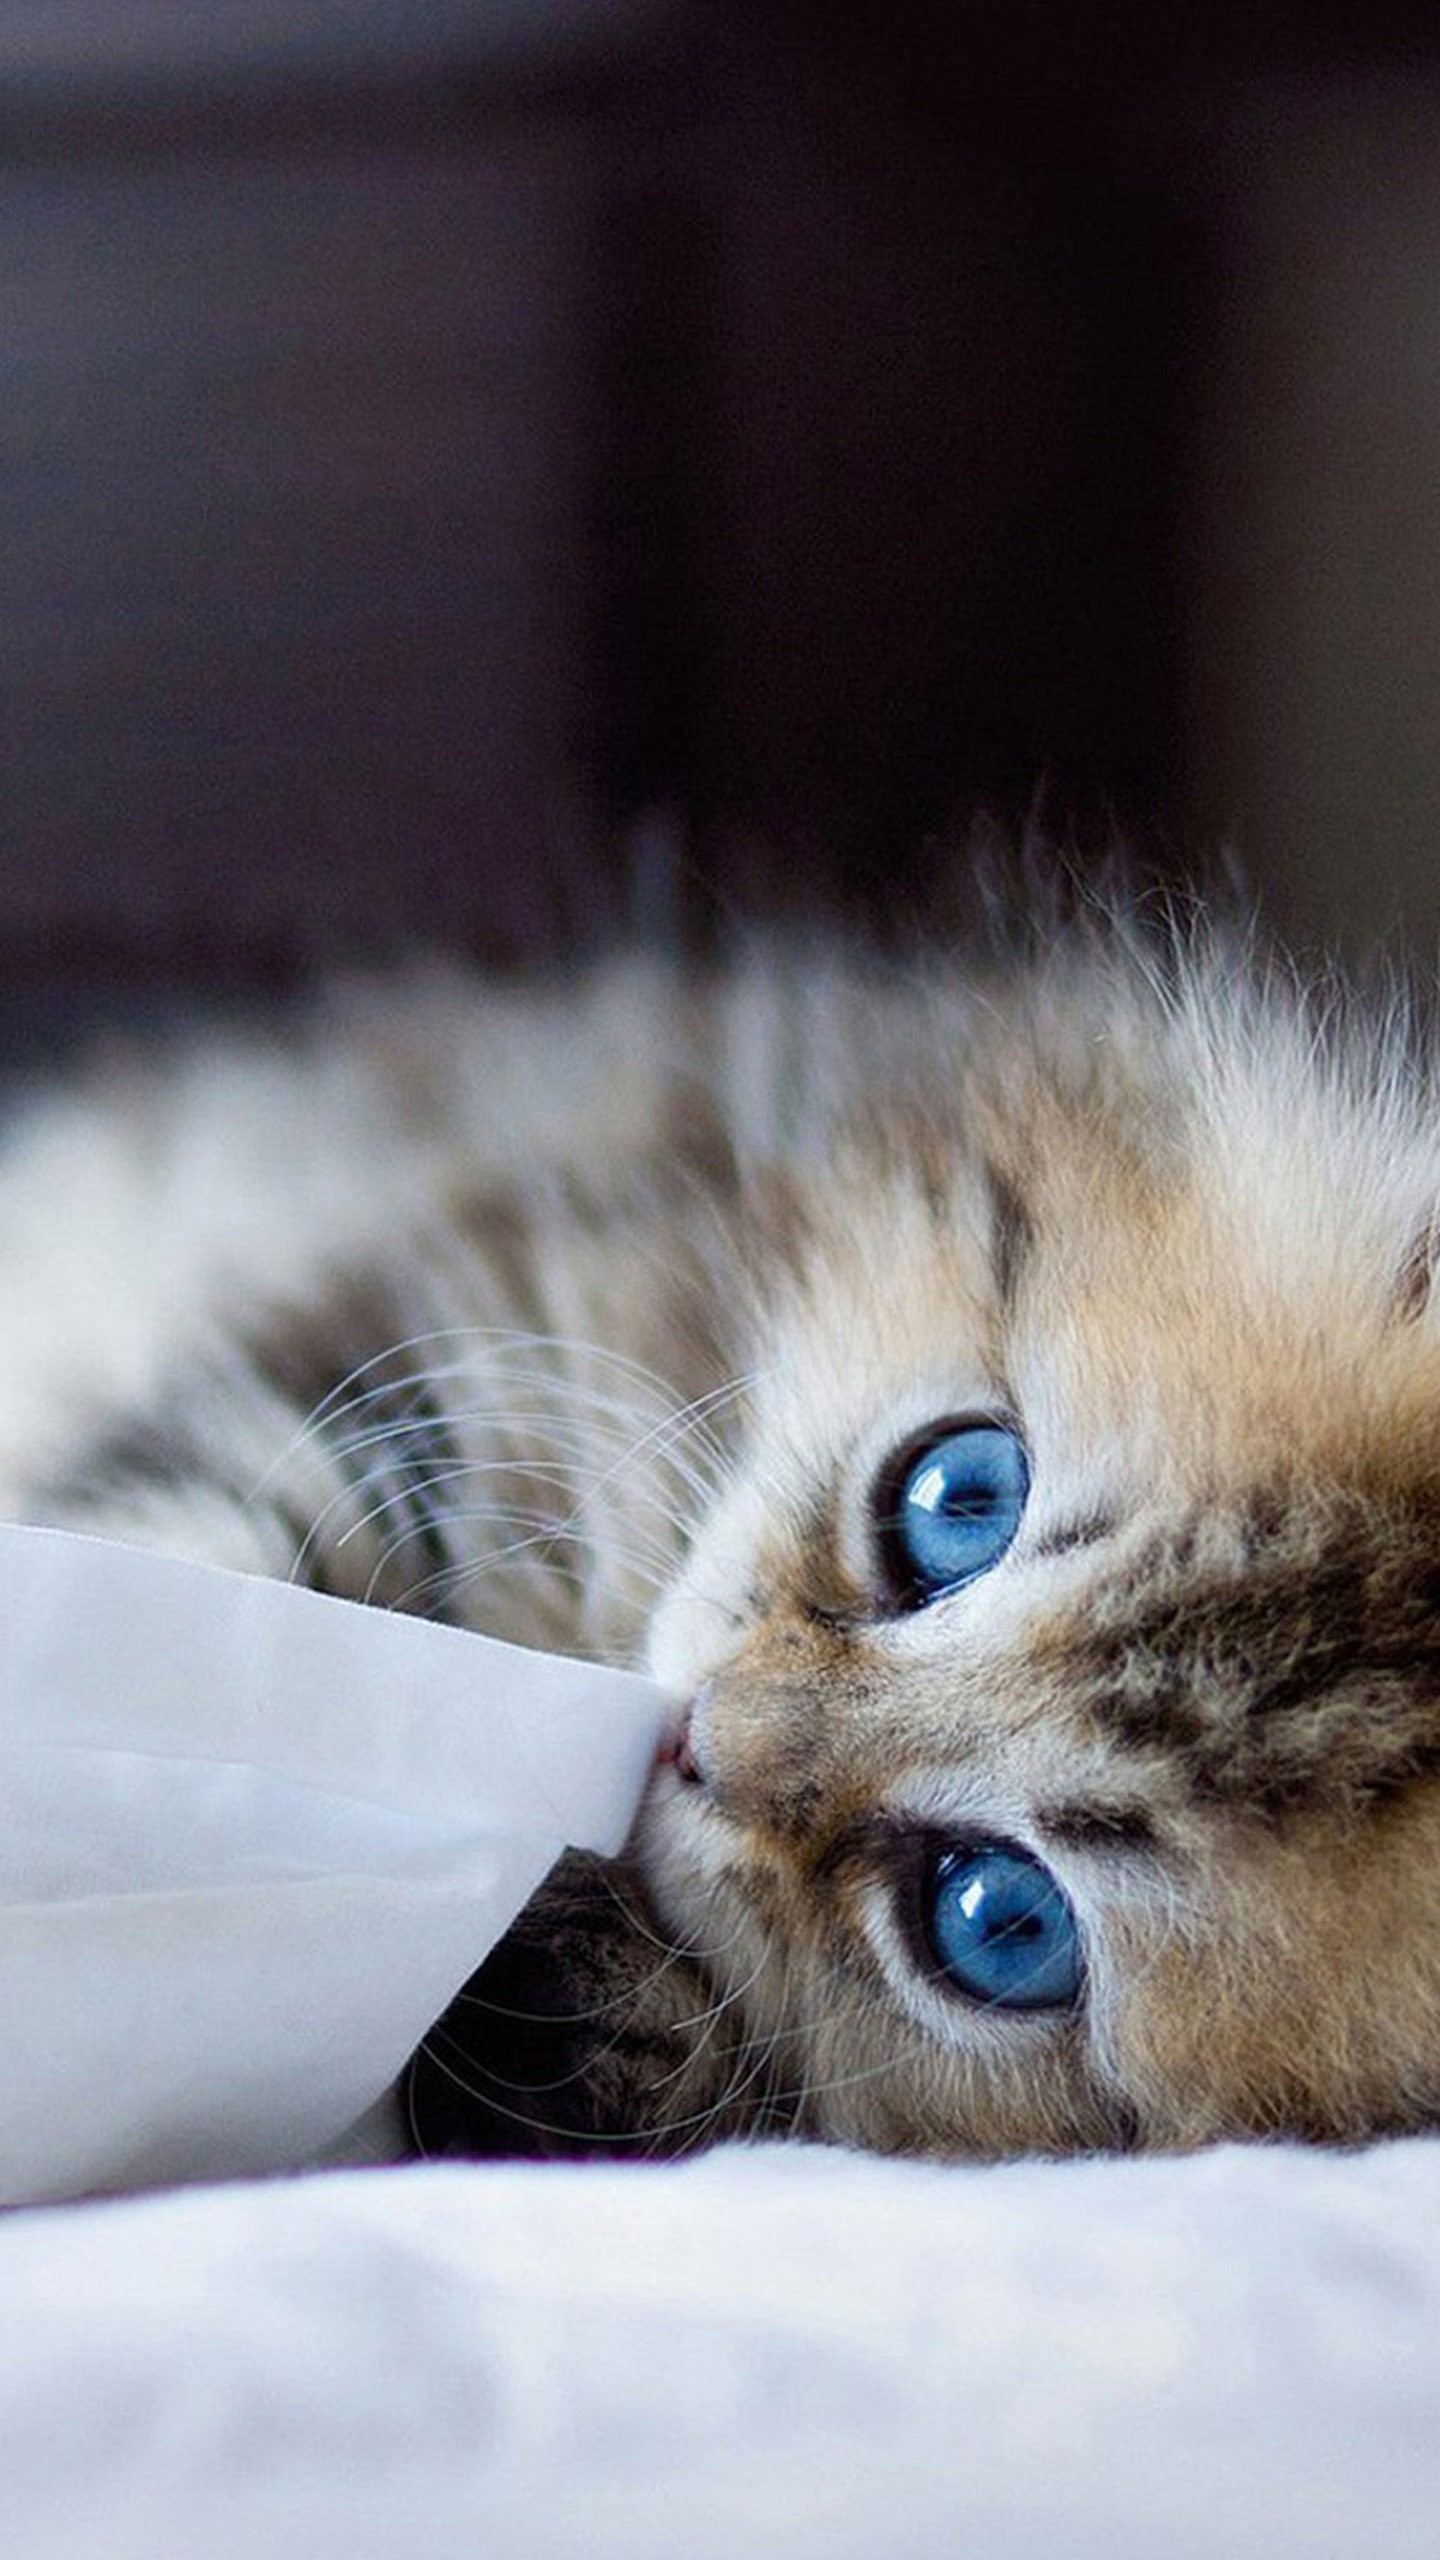 Cute Cats Wallpapers Download Cute Cats Hd Wallpapers For Galaxy S7 Wallpapers Pictures